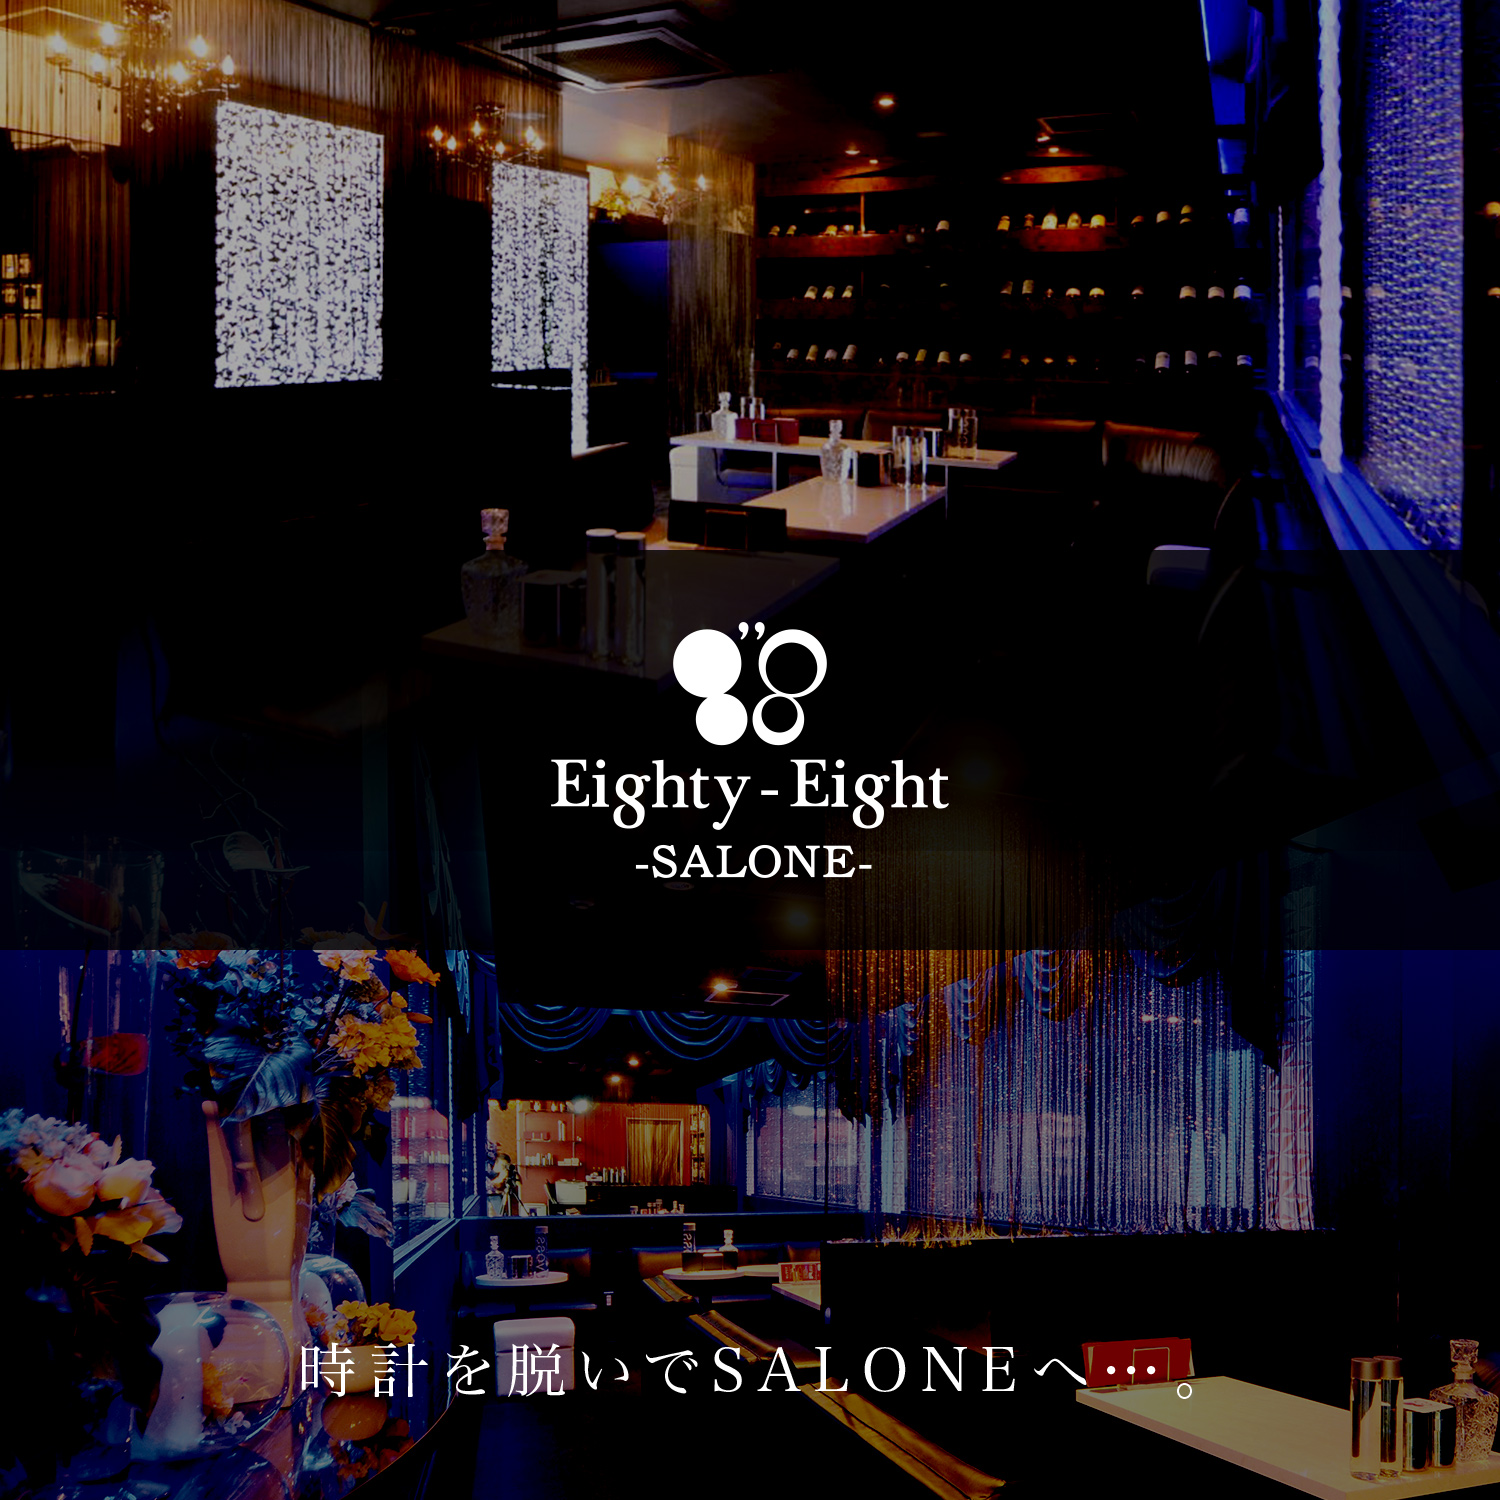 88 Eighty-Eight SALONE